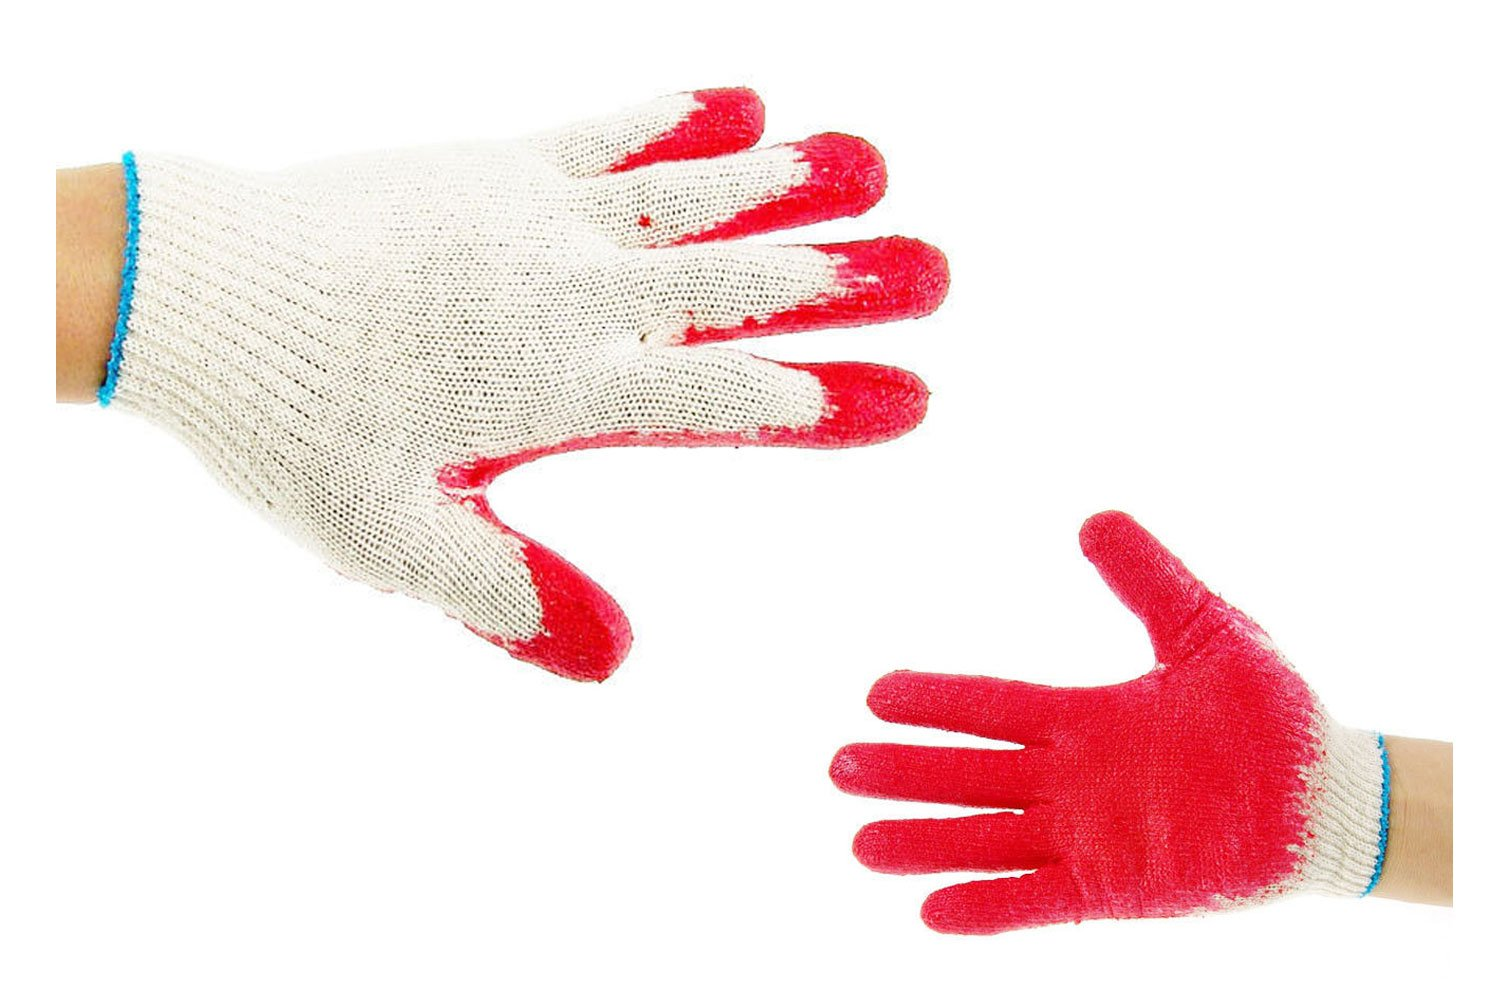 300 Pairs String Knit Red Palm Latex Dipped Gloves, Made in Korea -WRGKR300W/B by Better Grip